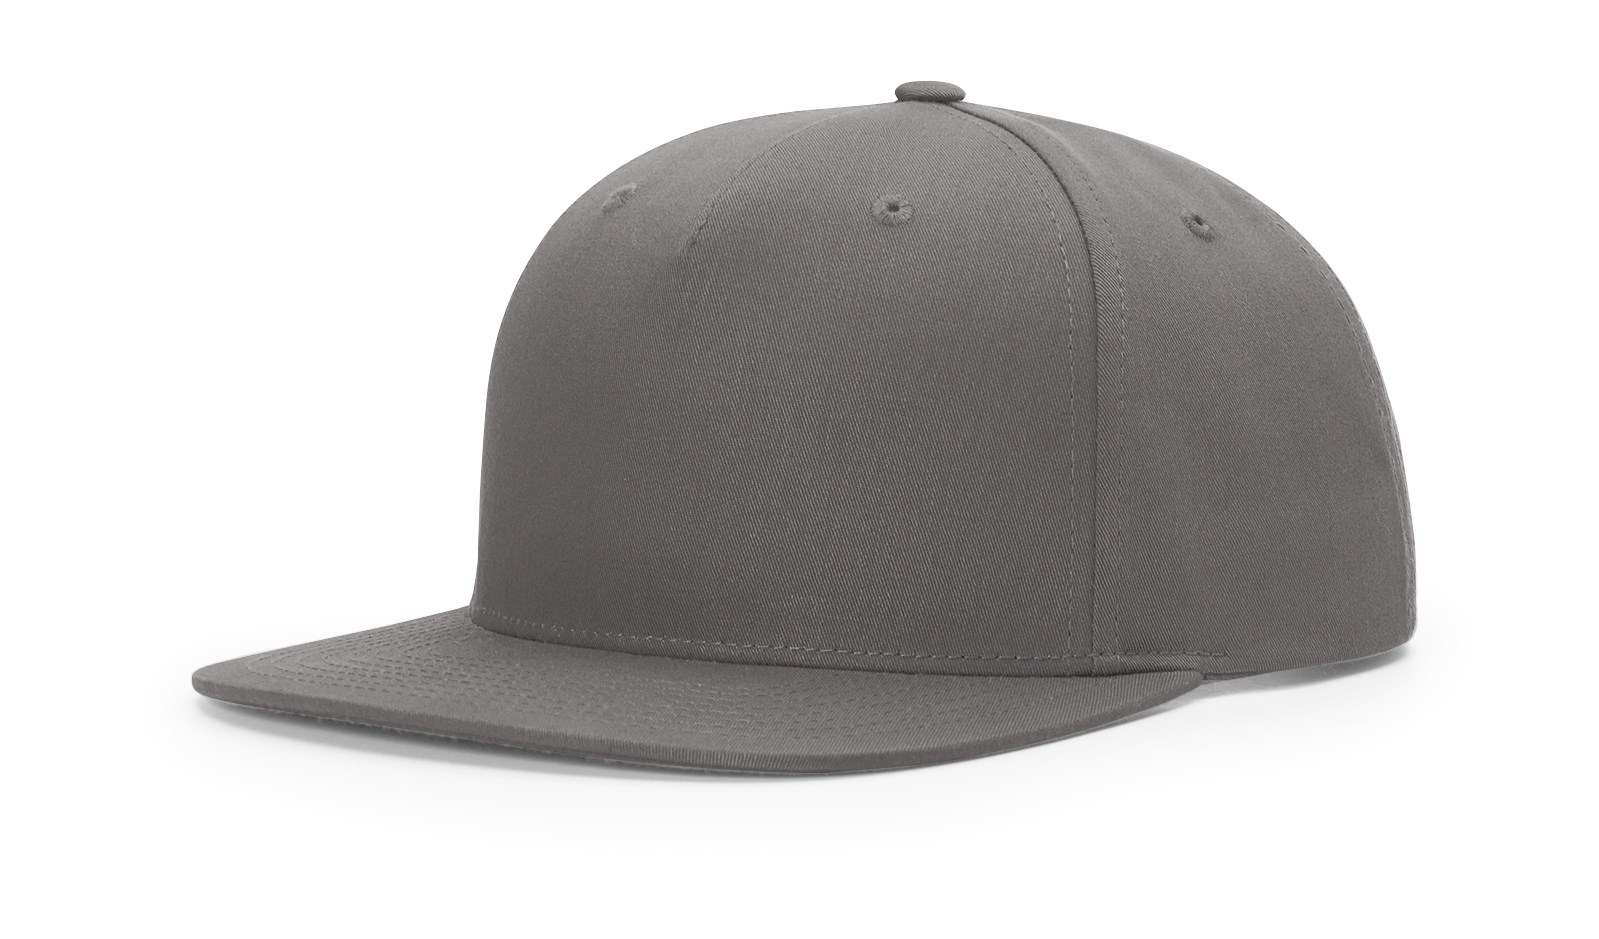 88f4fc1ed71 955 PINCH FRONT STRUCTURED SNAPBACK - Flint Grey - Nublank Caps